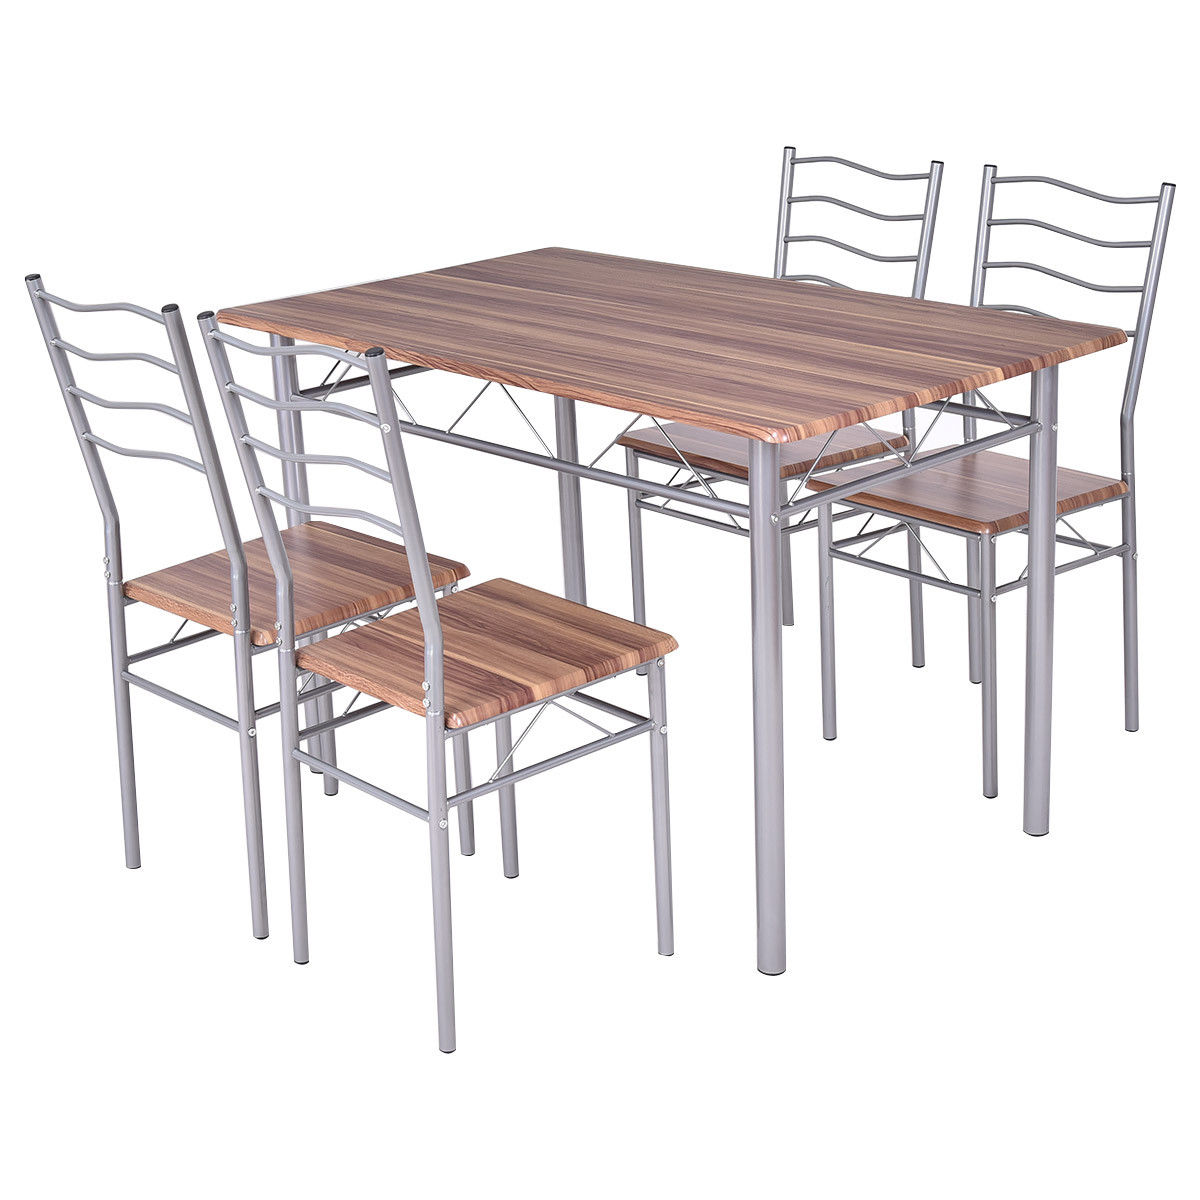 Costway 5 Piece Dining Set Wood Metal Table and 4 Chairs Kitchen Modern Furniture